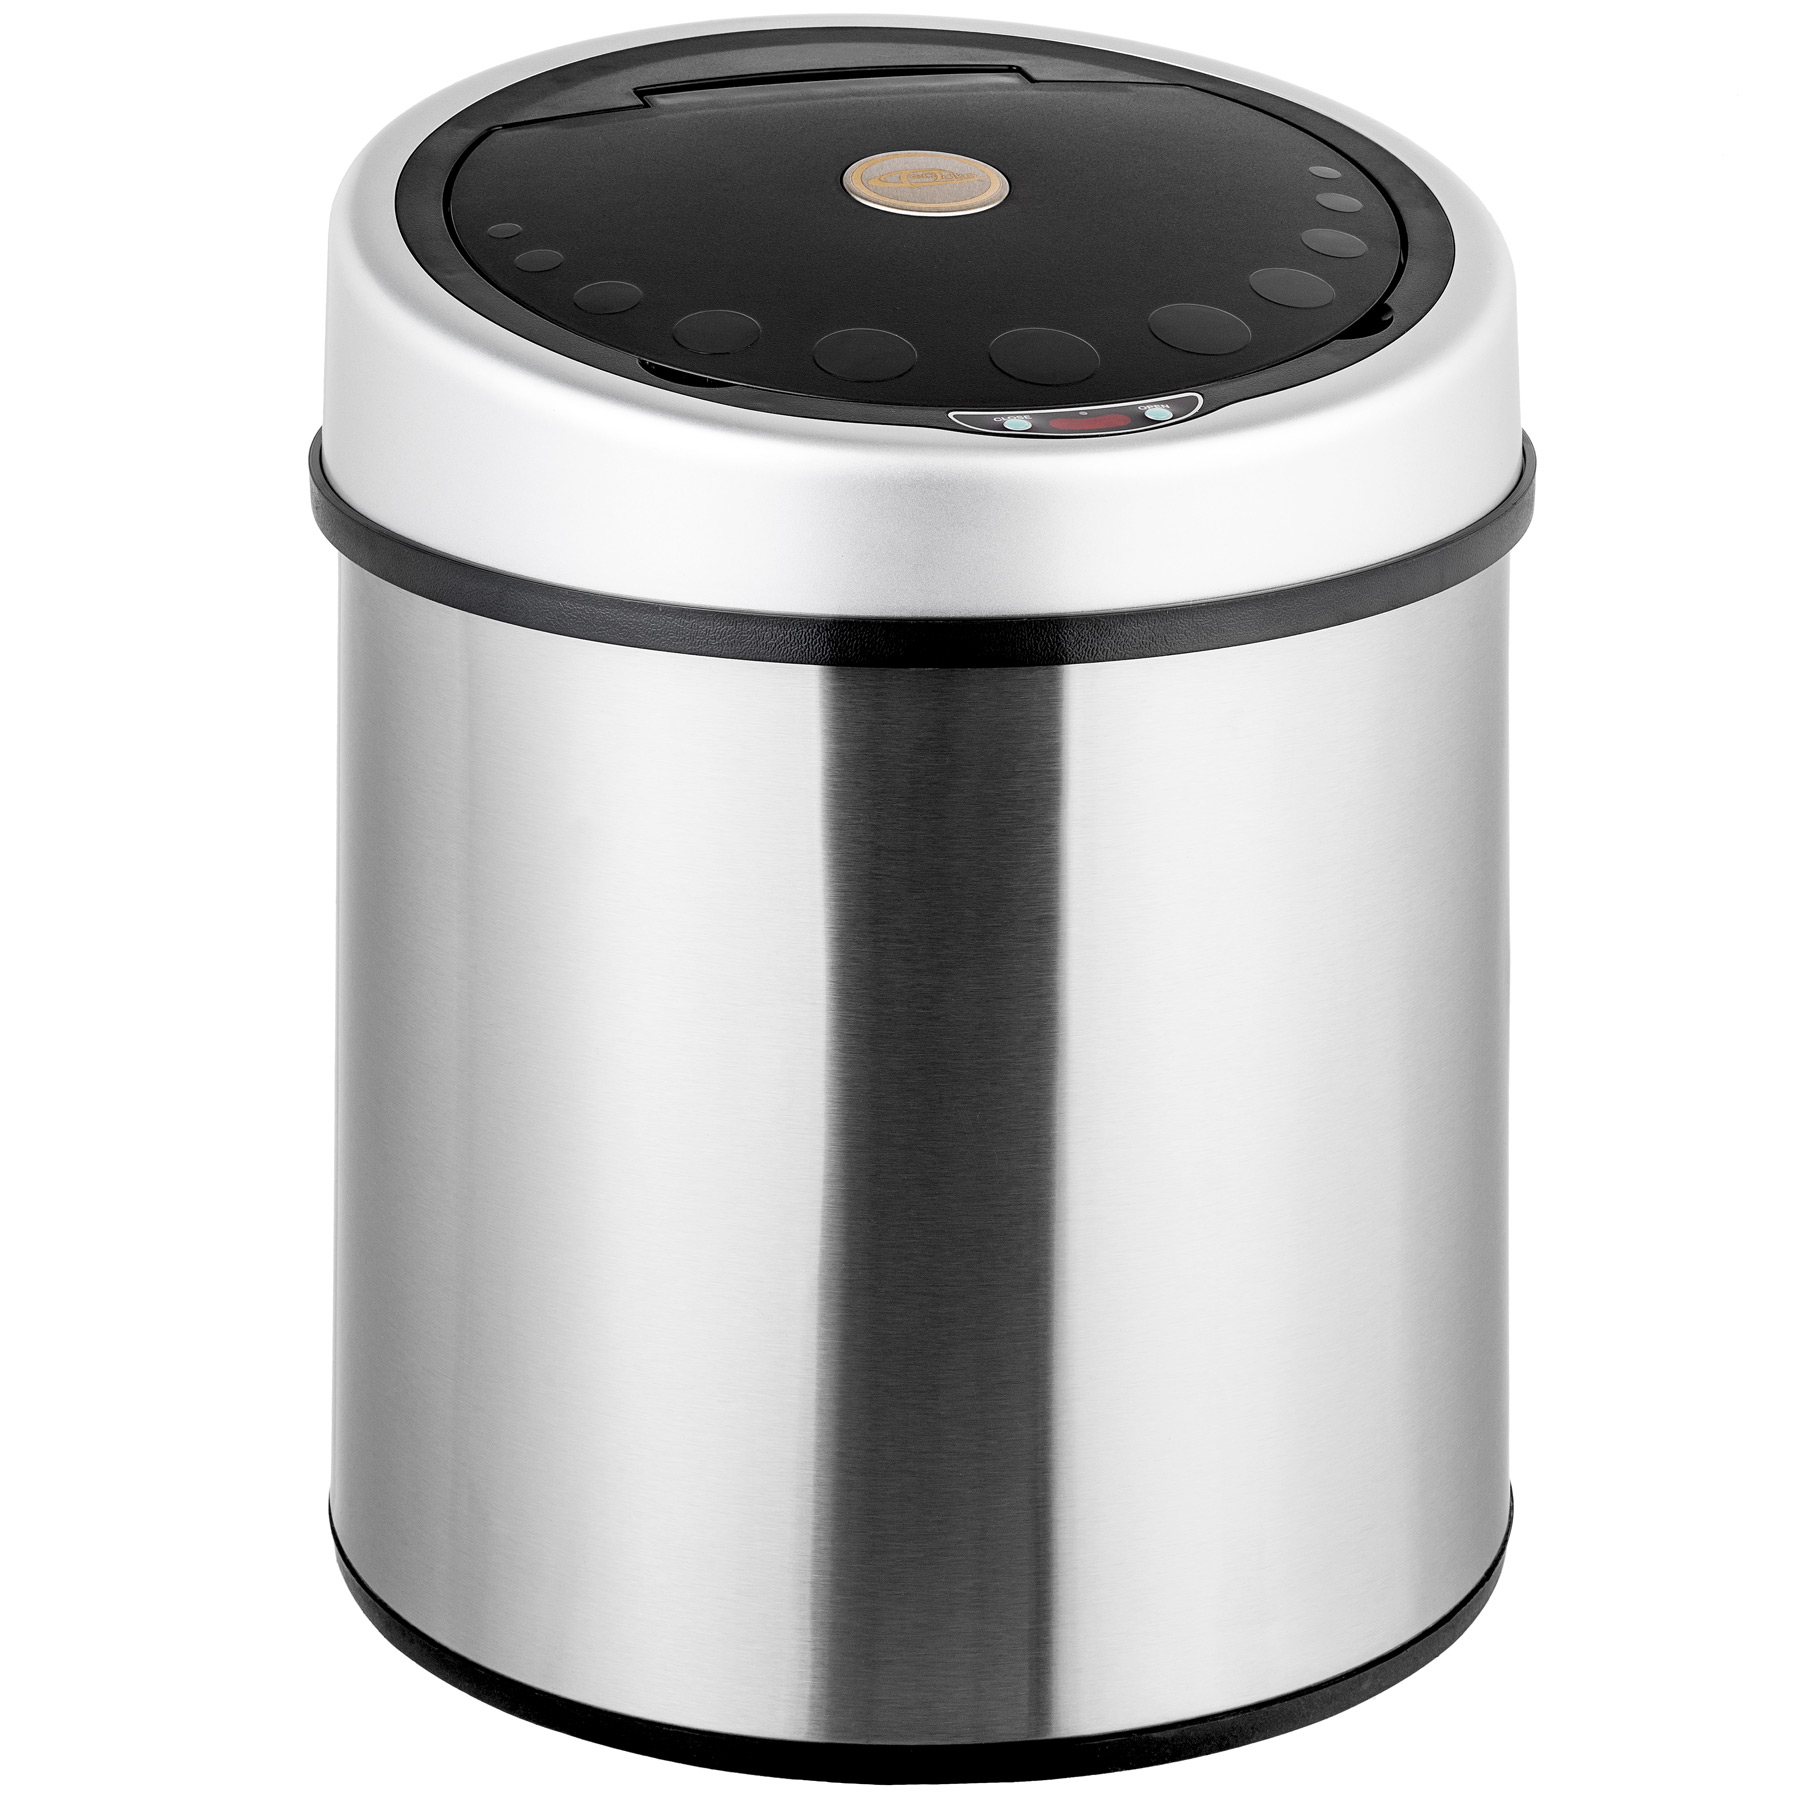 automatic sensor dust bin kitchen waste stainless steel. Black Bedroom Furniture Sets. Home Design Ideas